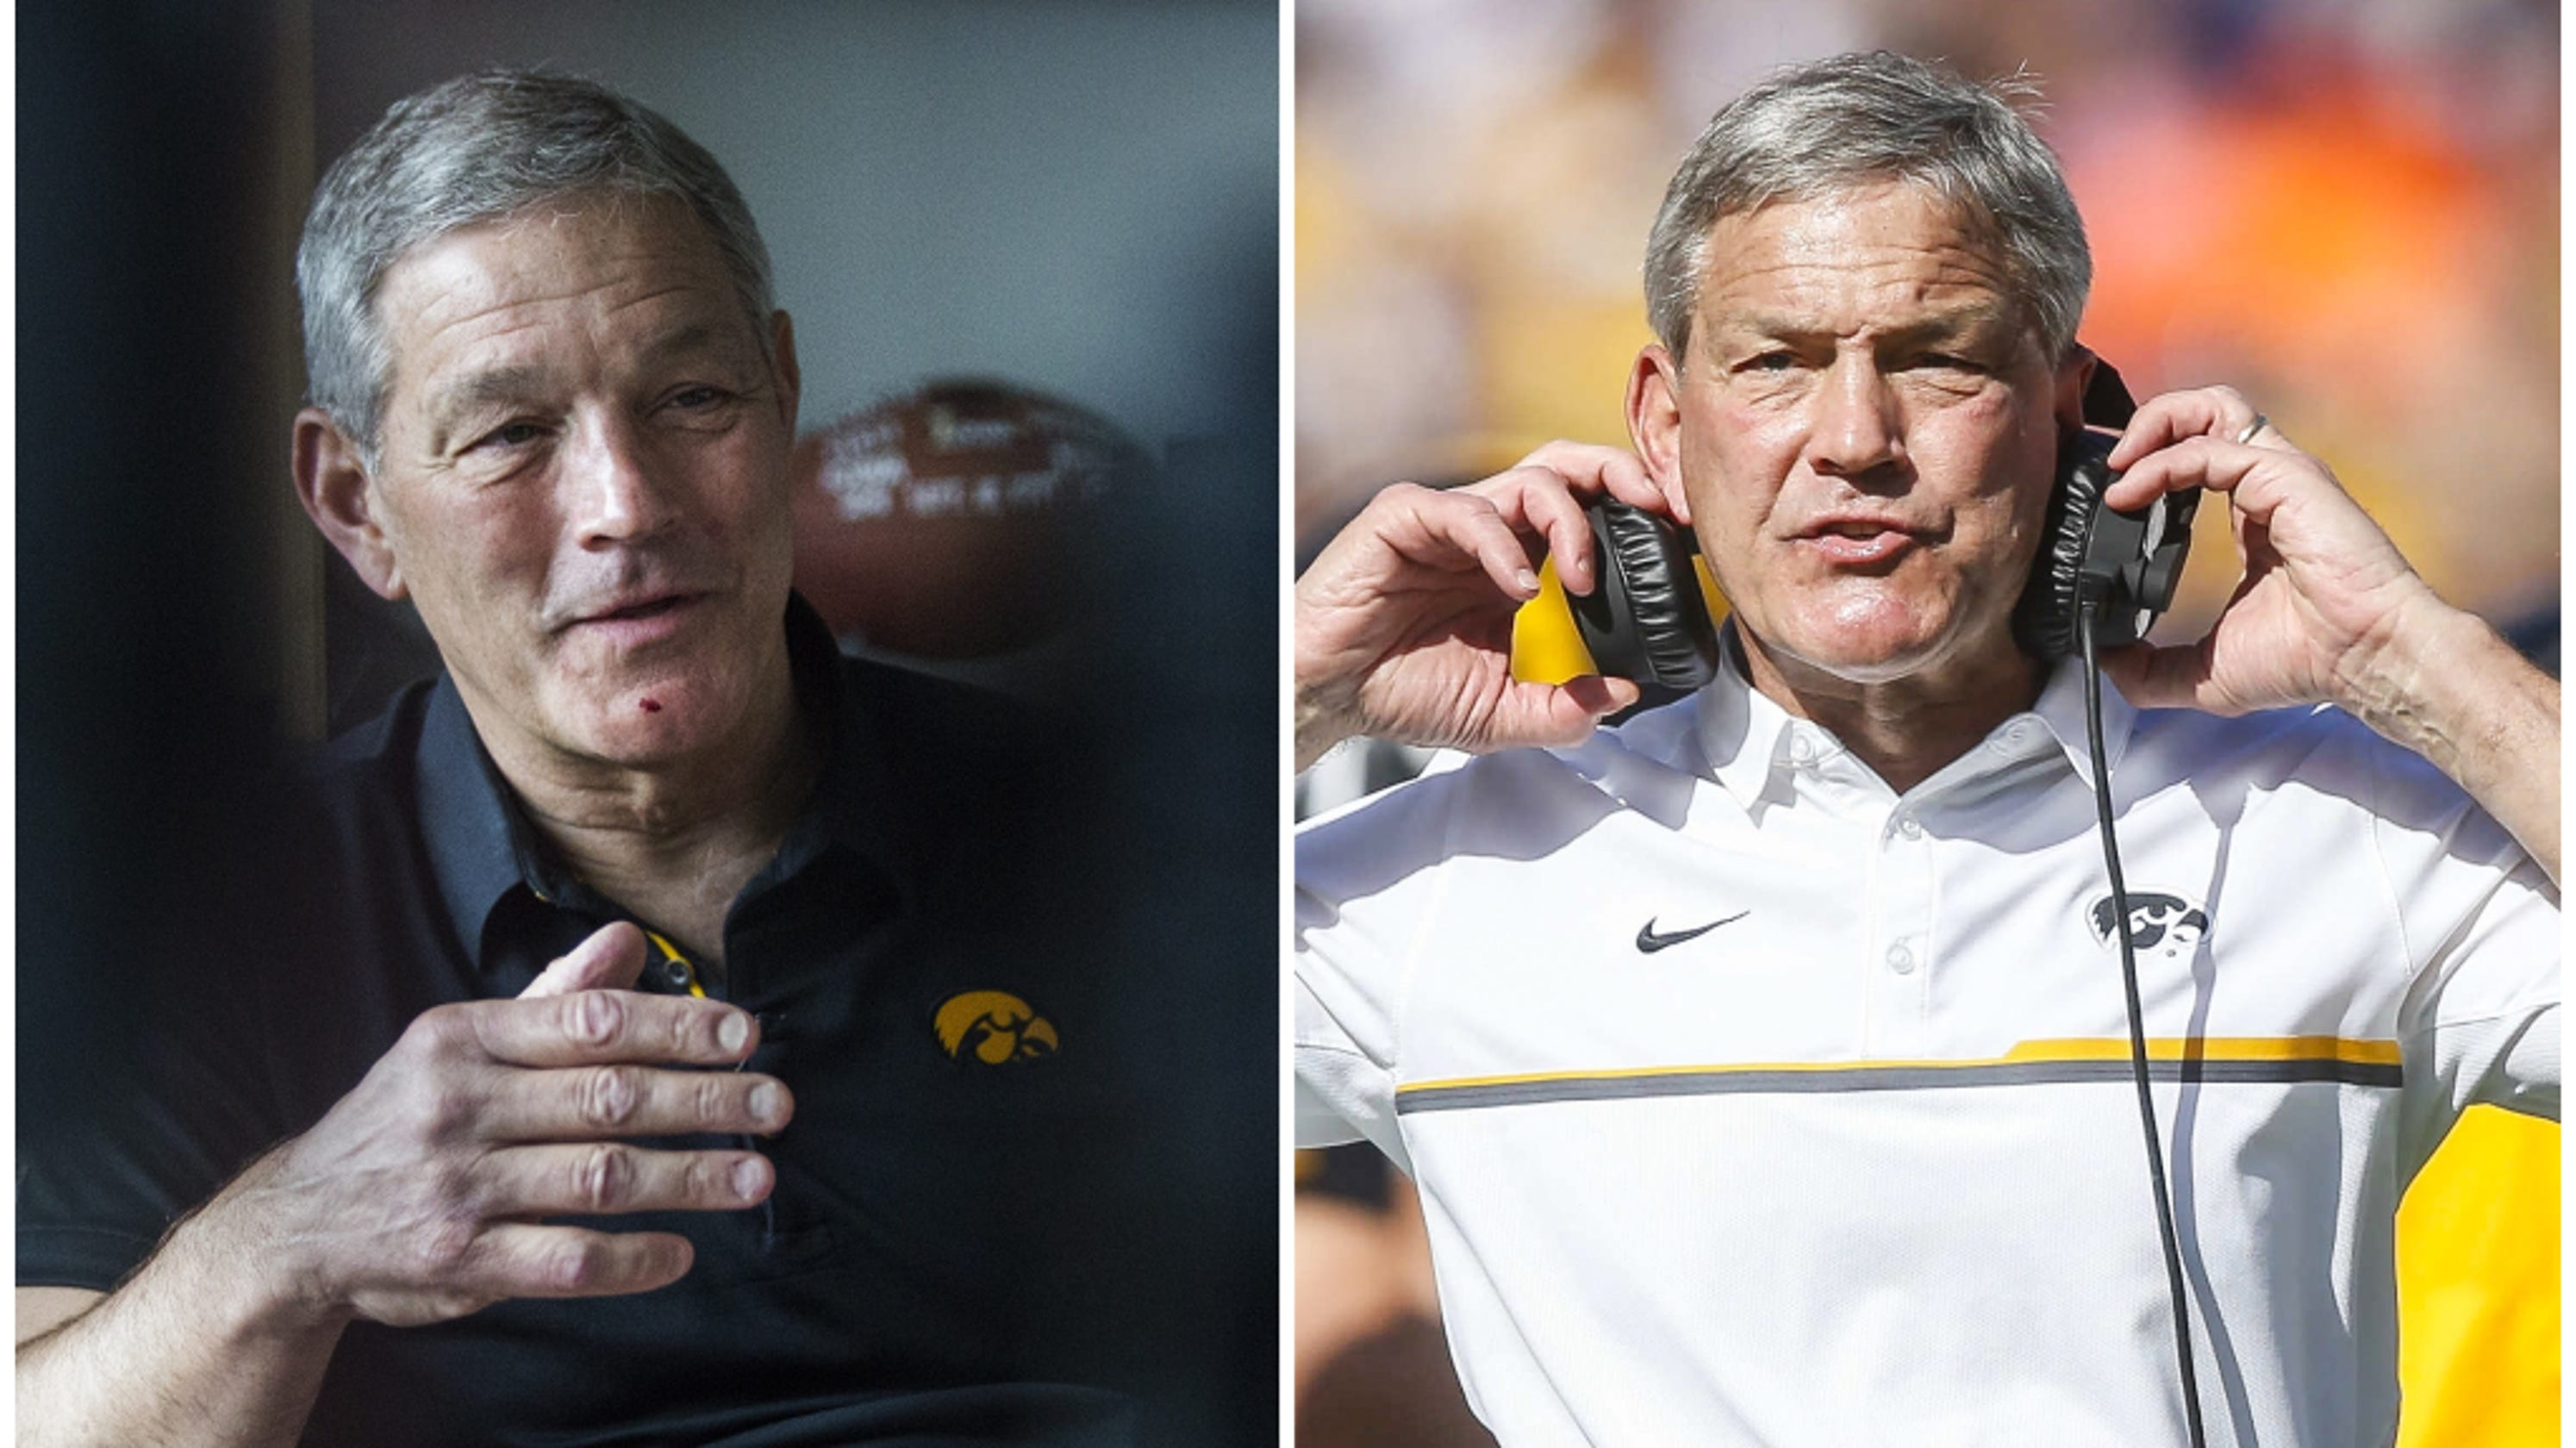 Kirk Ferentz: Overrated or underrated? NCAA football coaches say both